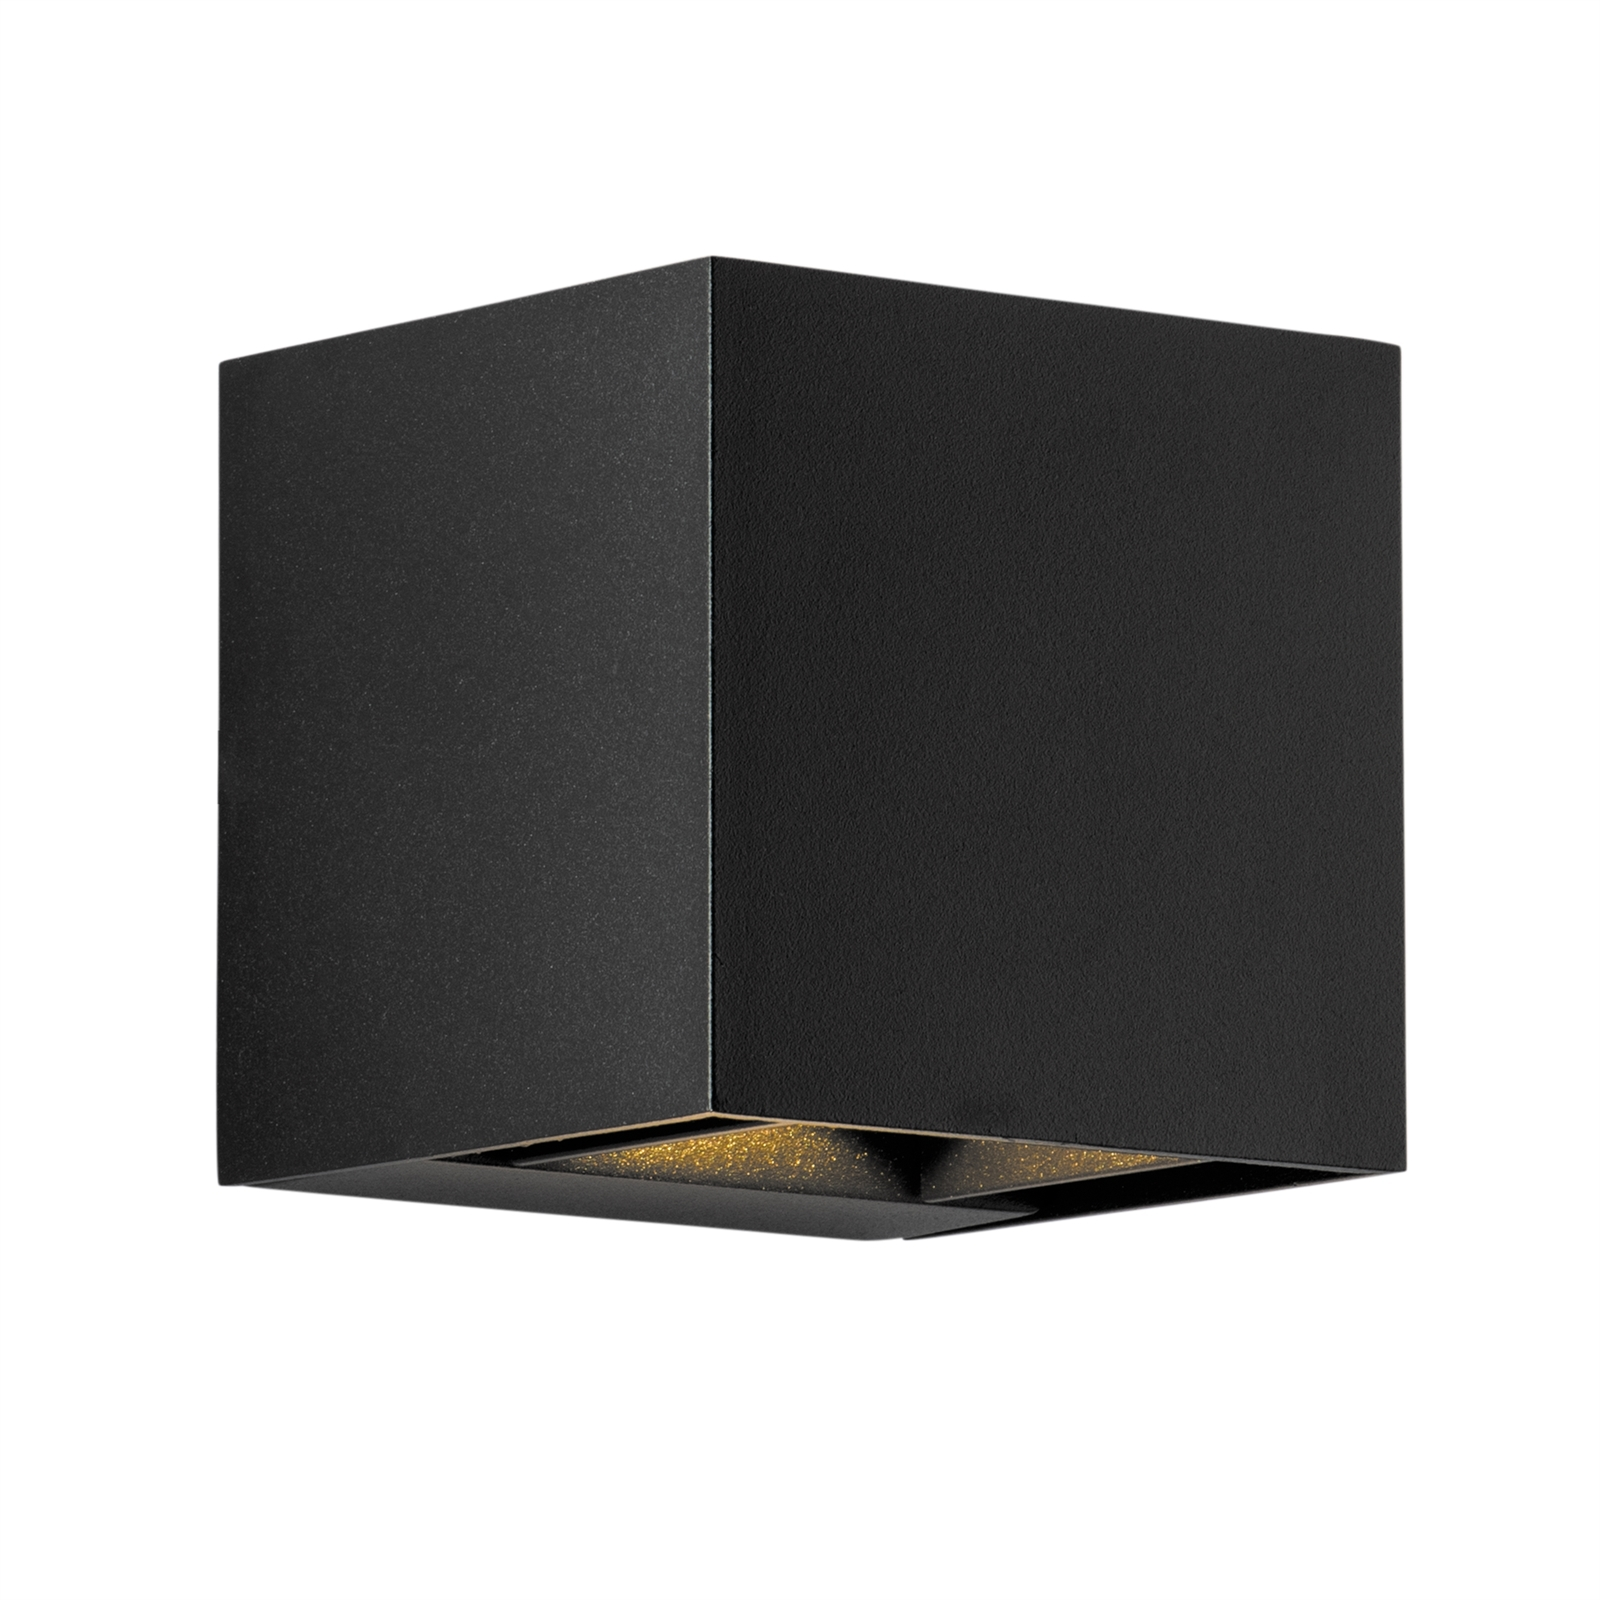 Verve LED Design Bolton Up And Down Wall Light